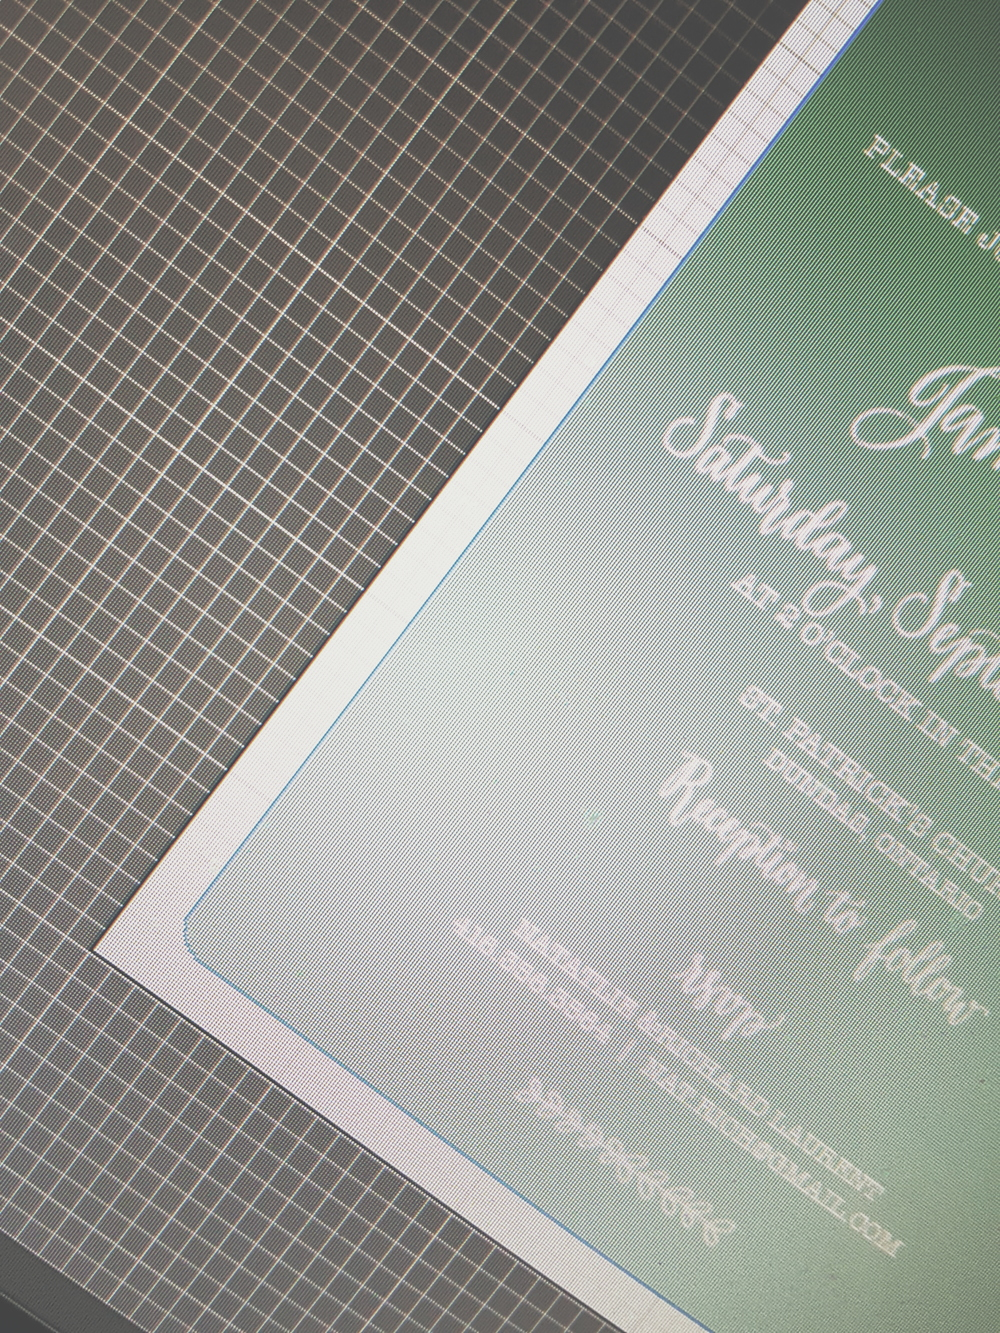 Sneak Peek! New invitation designs